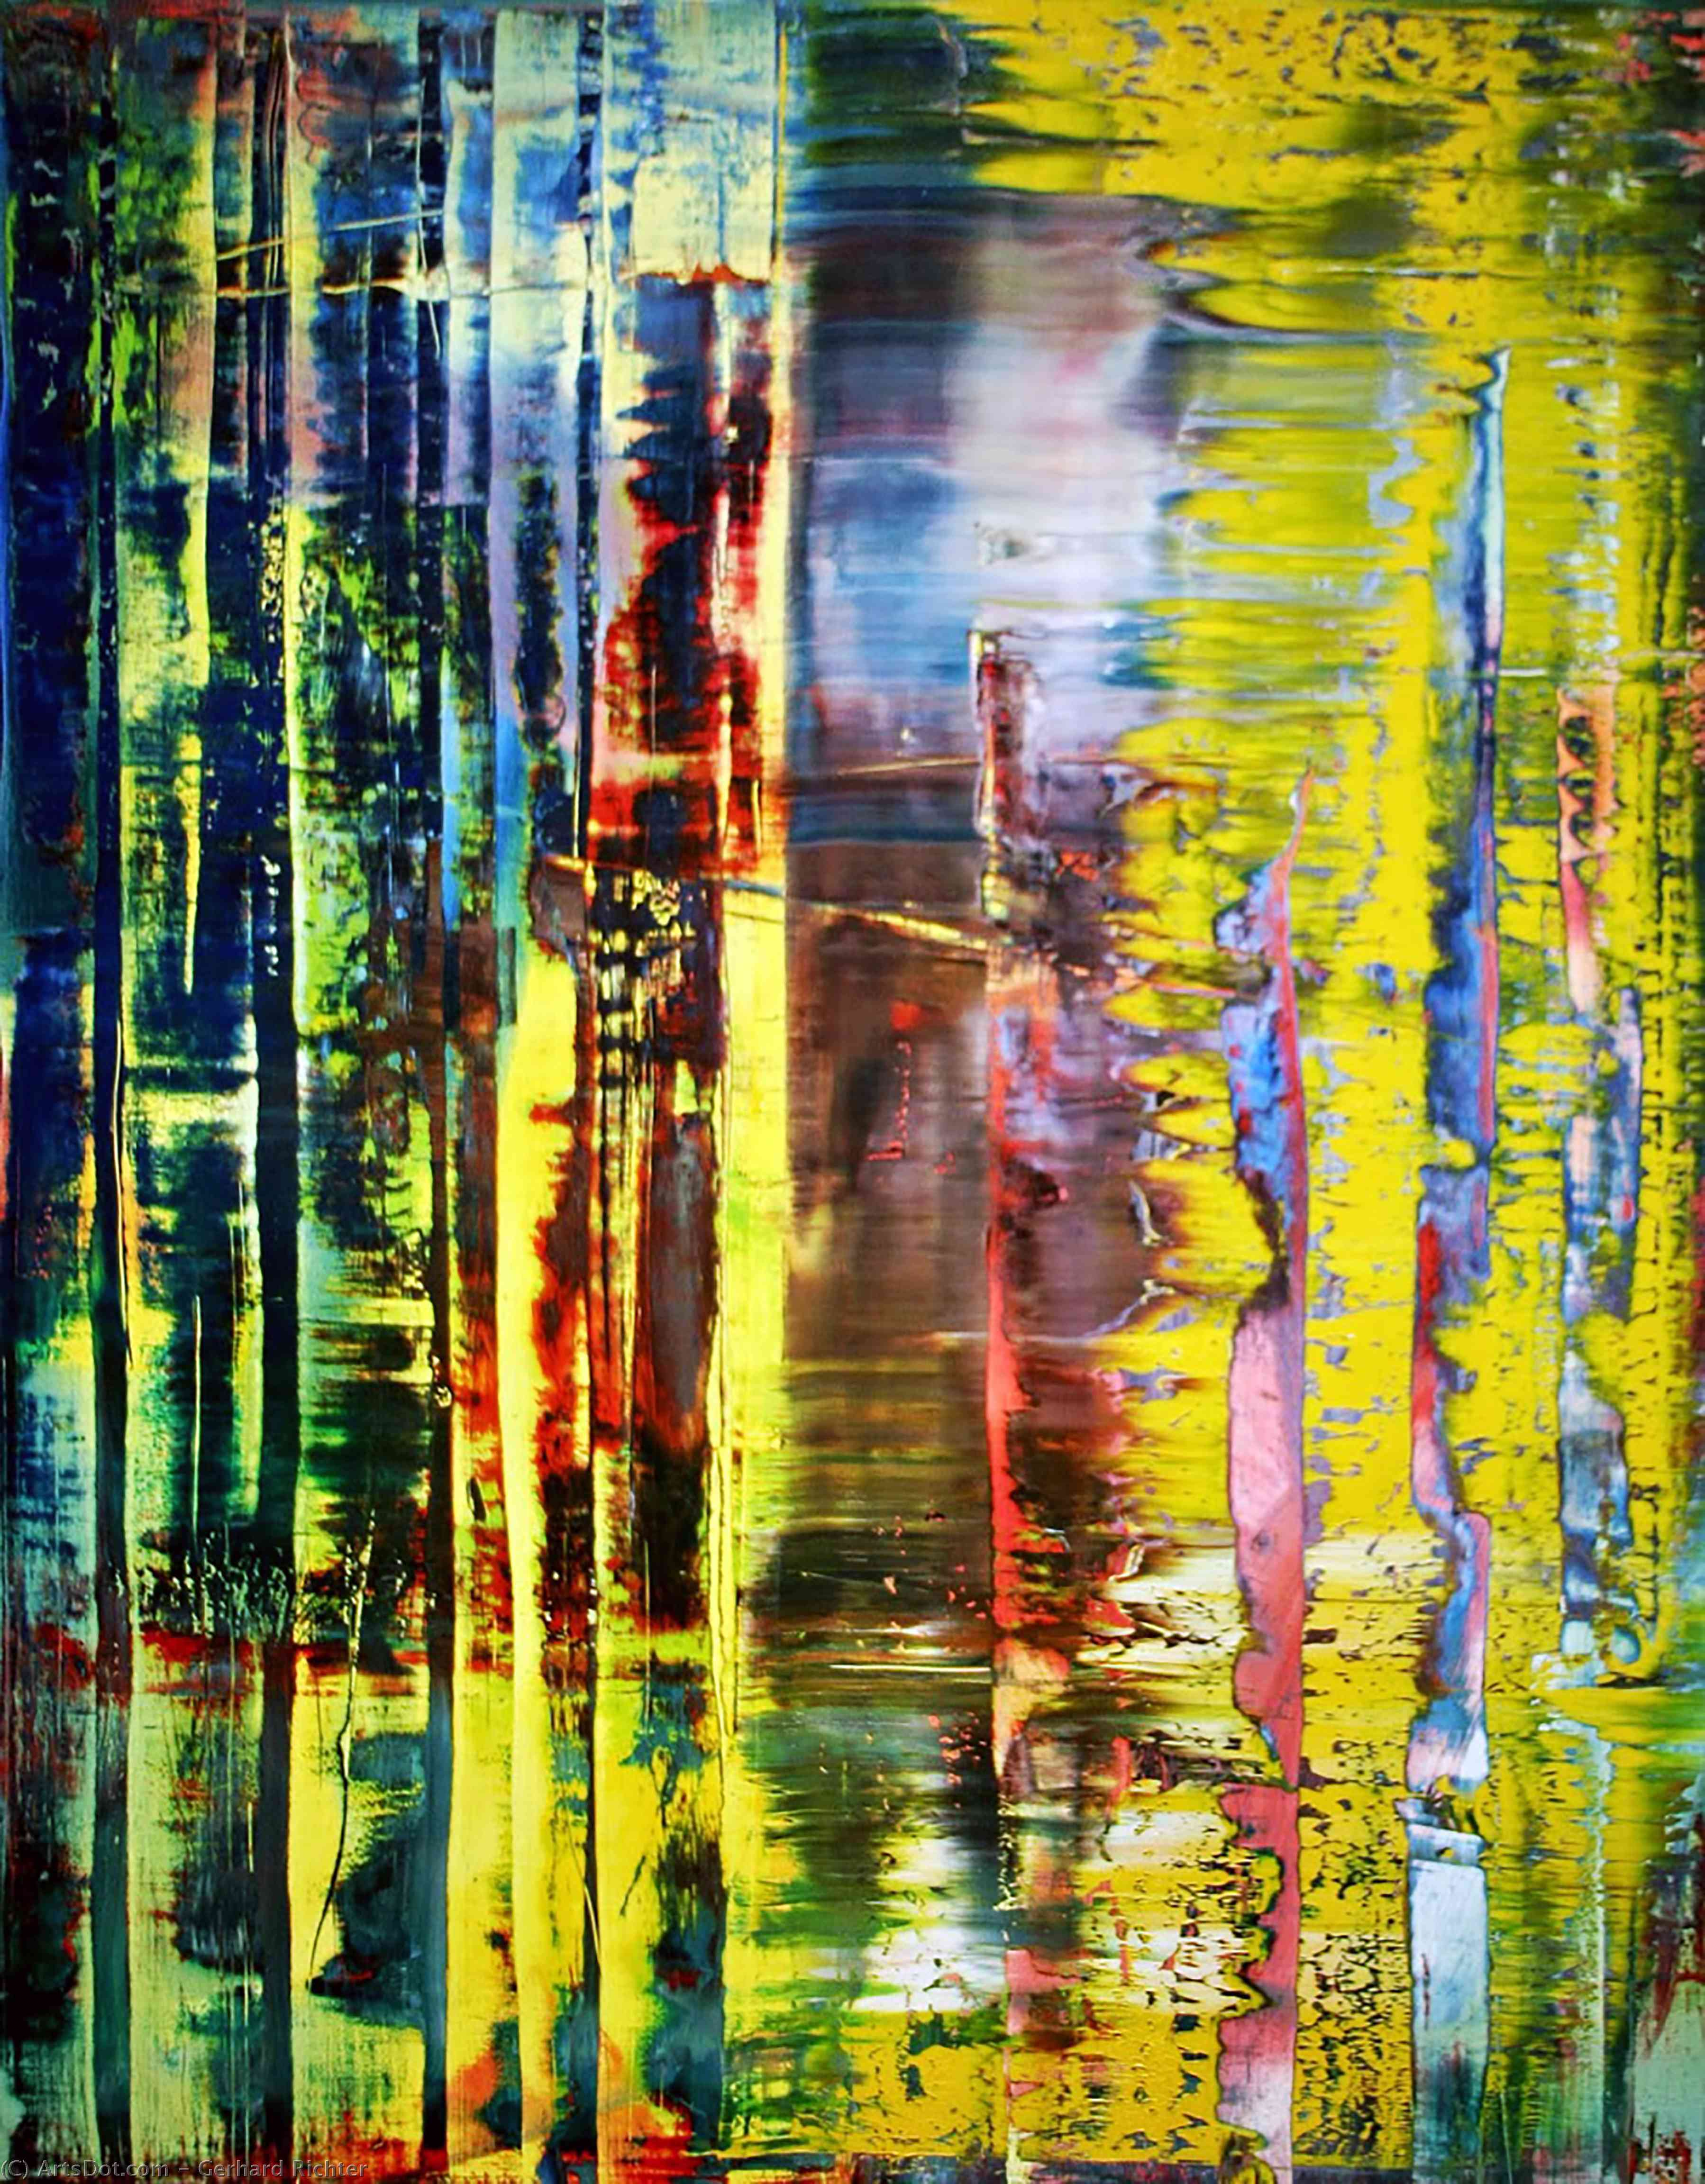 Abstract Painting 780-1, Oil On Canvas by Gerhard Richter